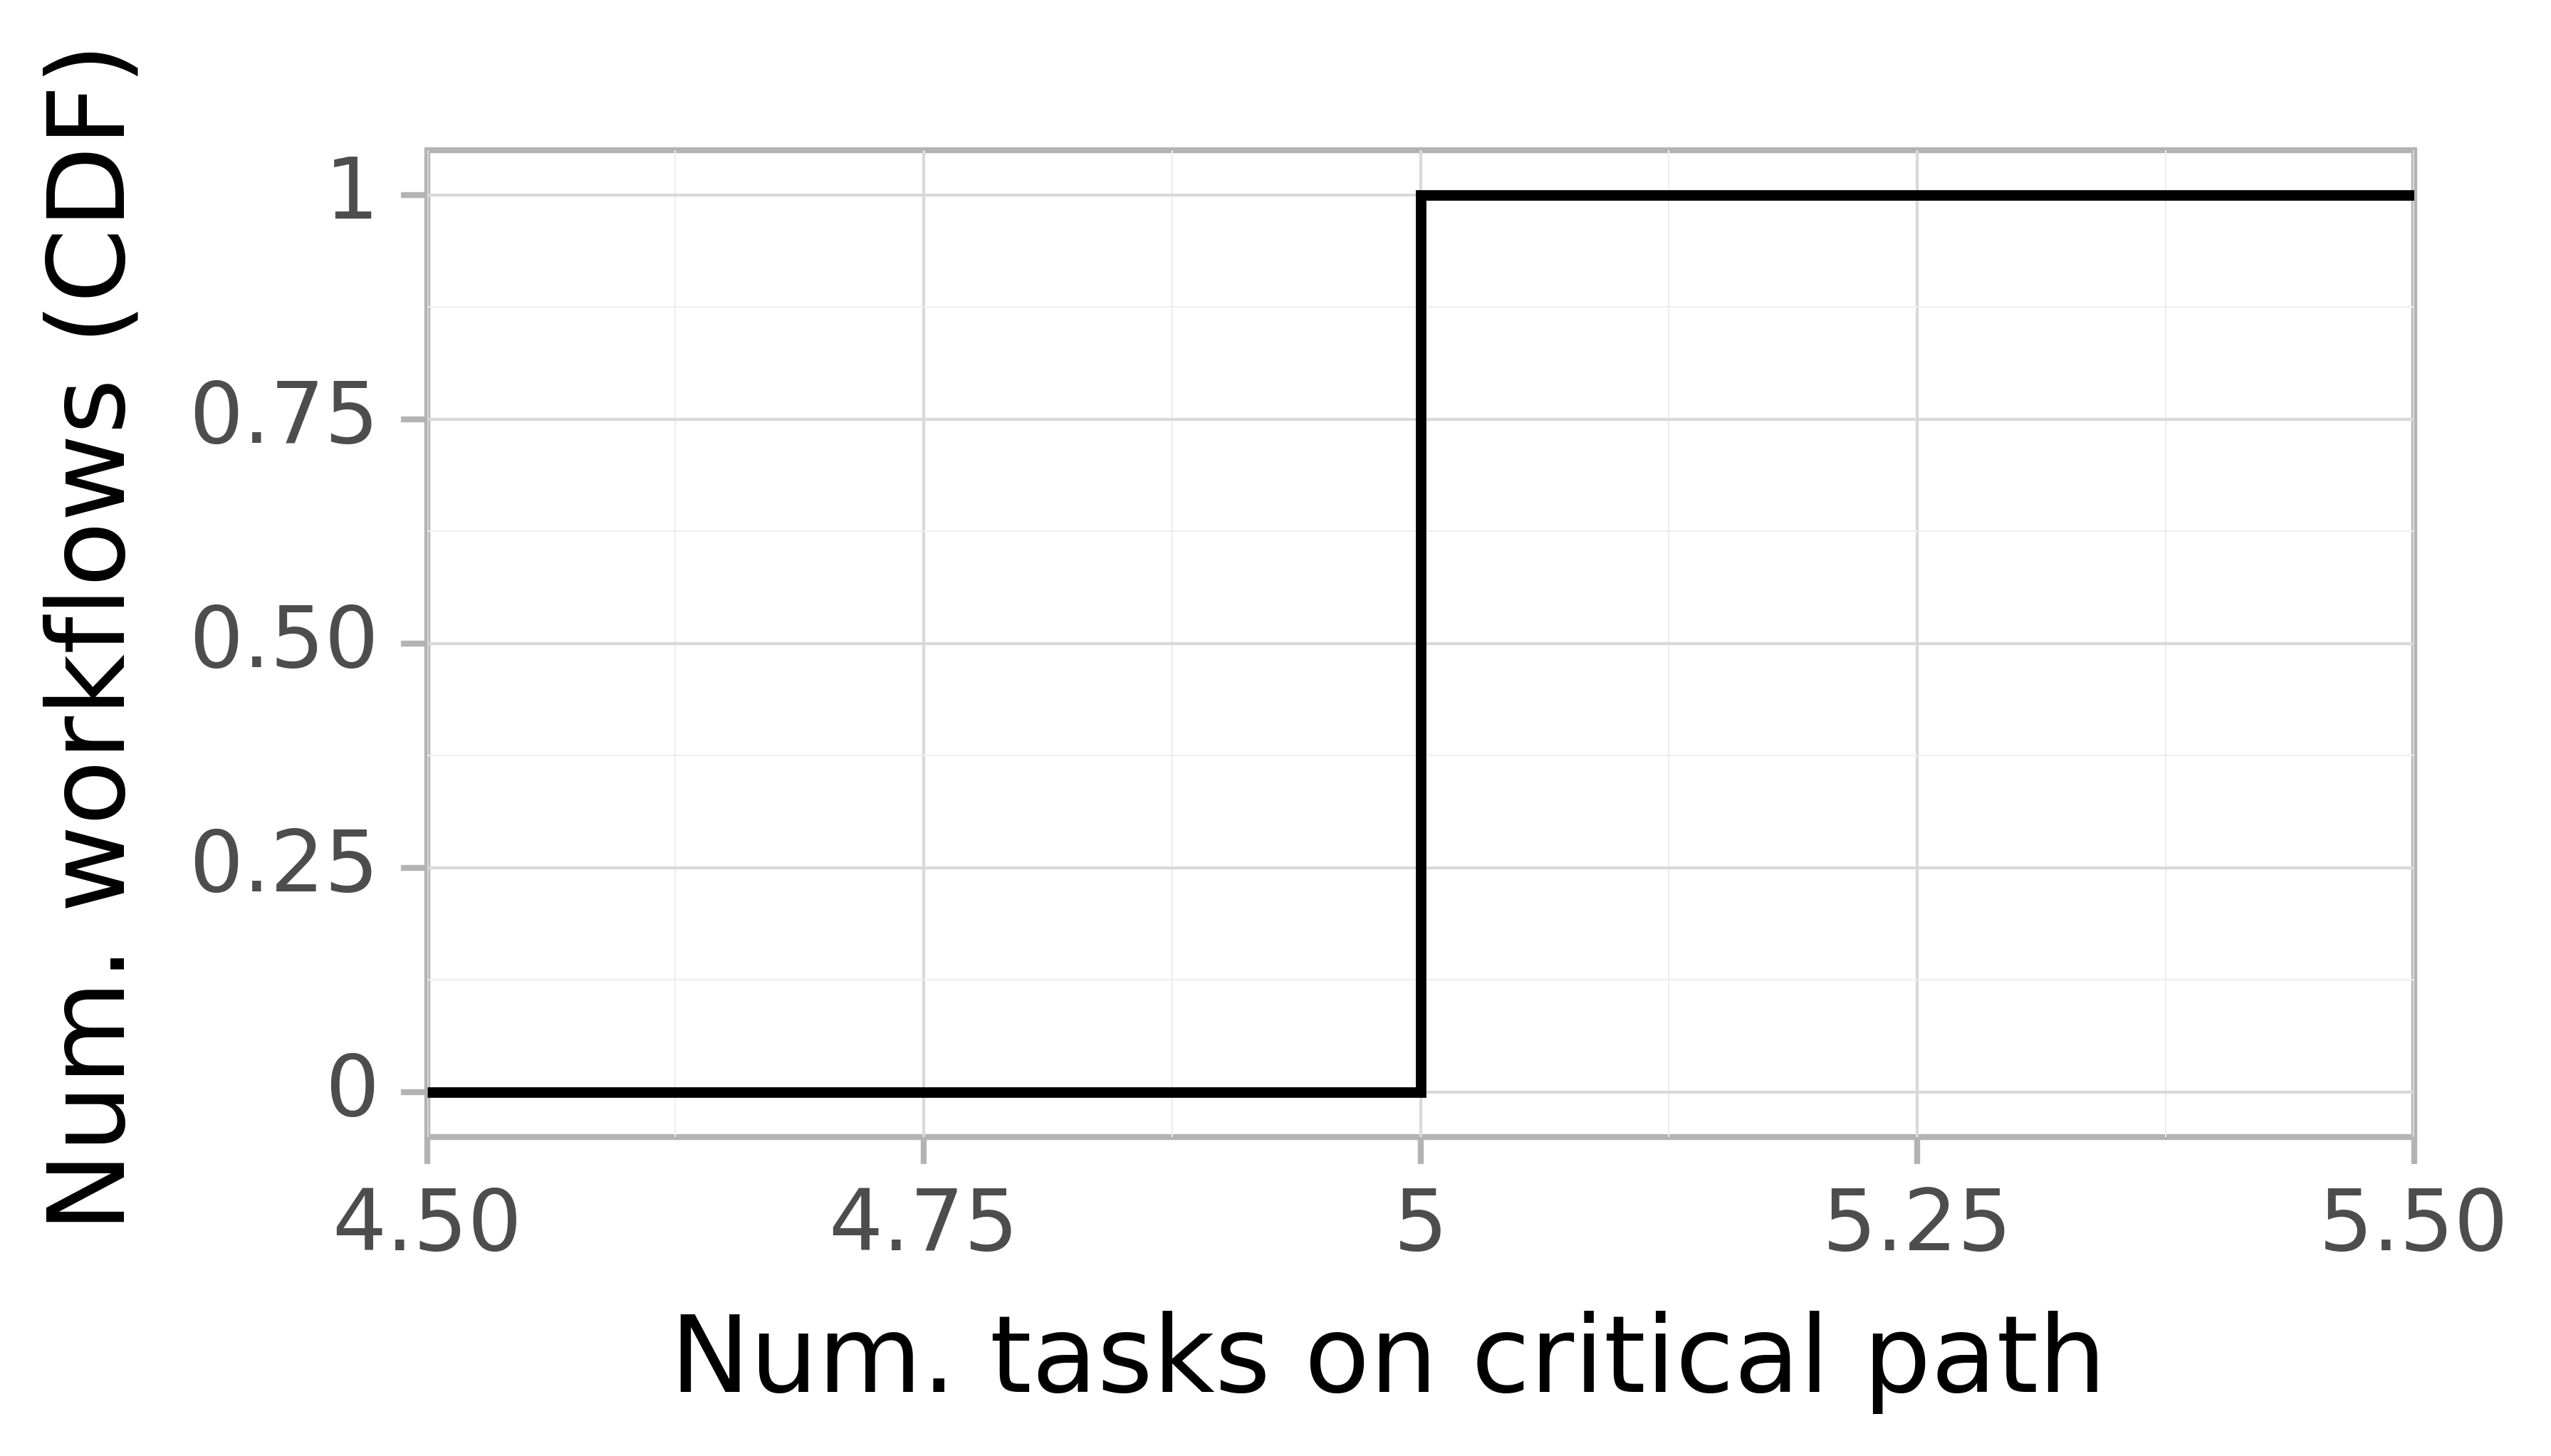 Job critical path task count graph for the askalon-new_ee44 trace.